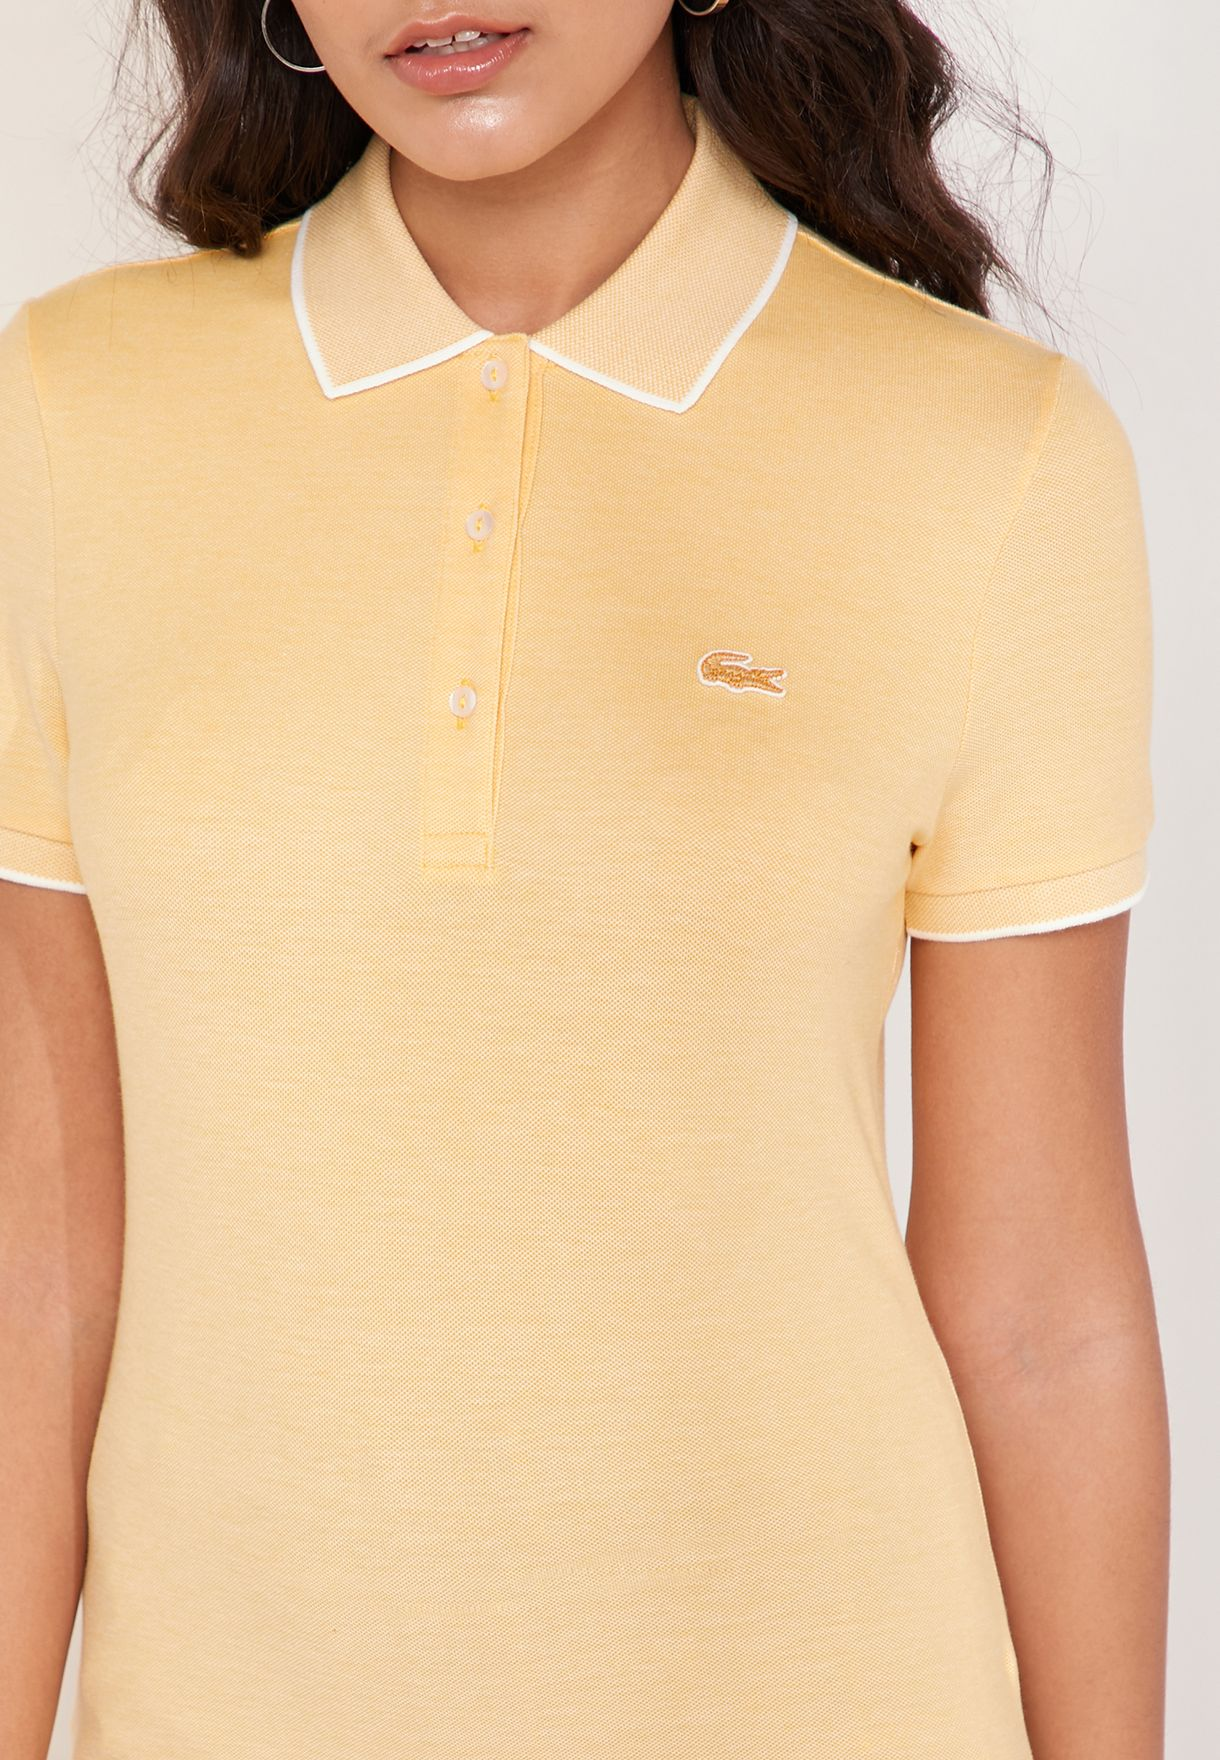 Contrast Trim Logo Polo T-Shirt